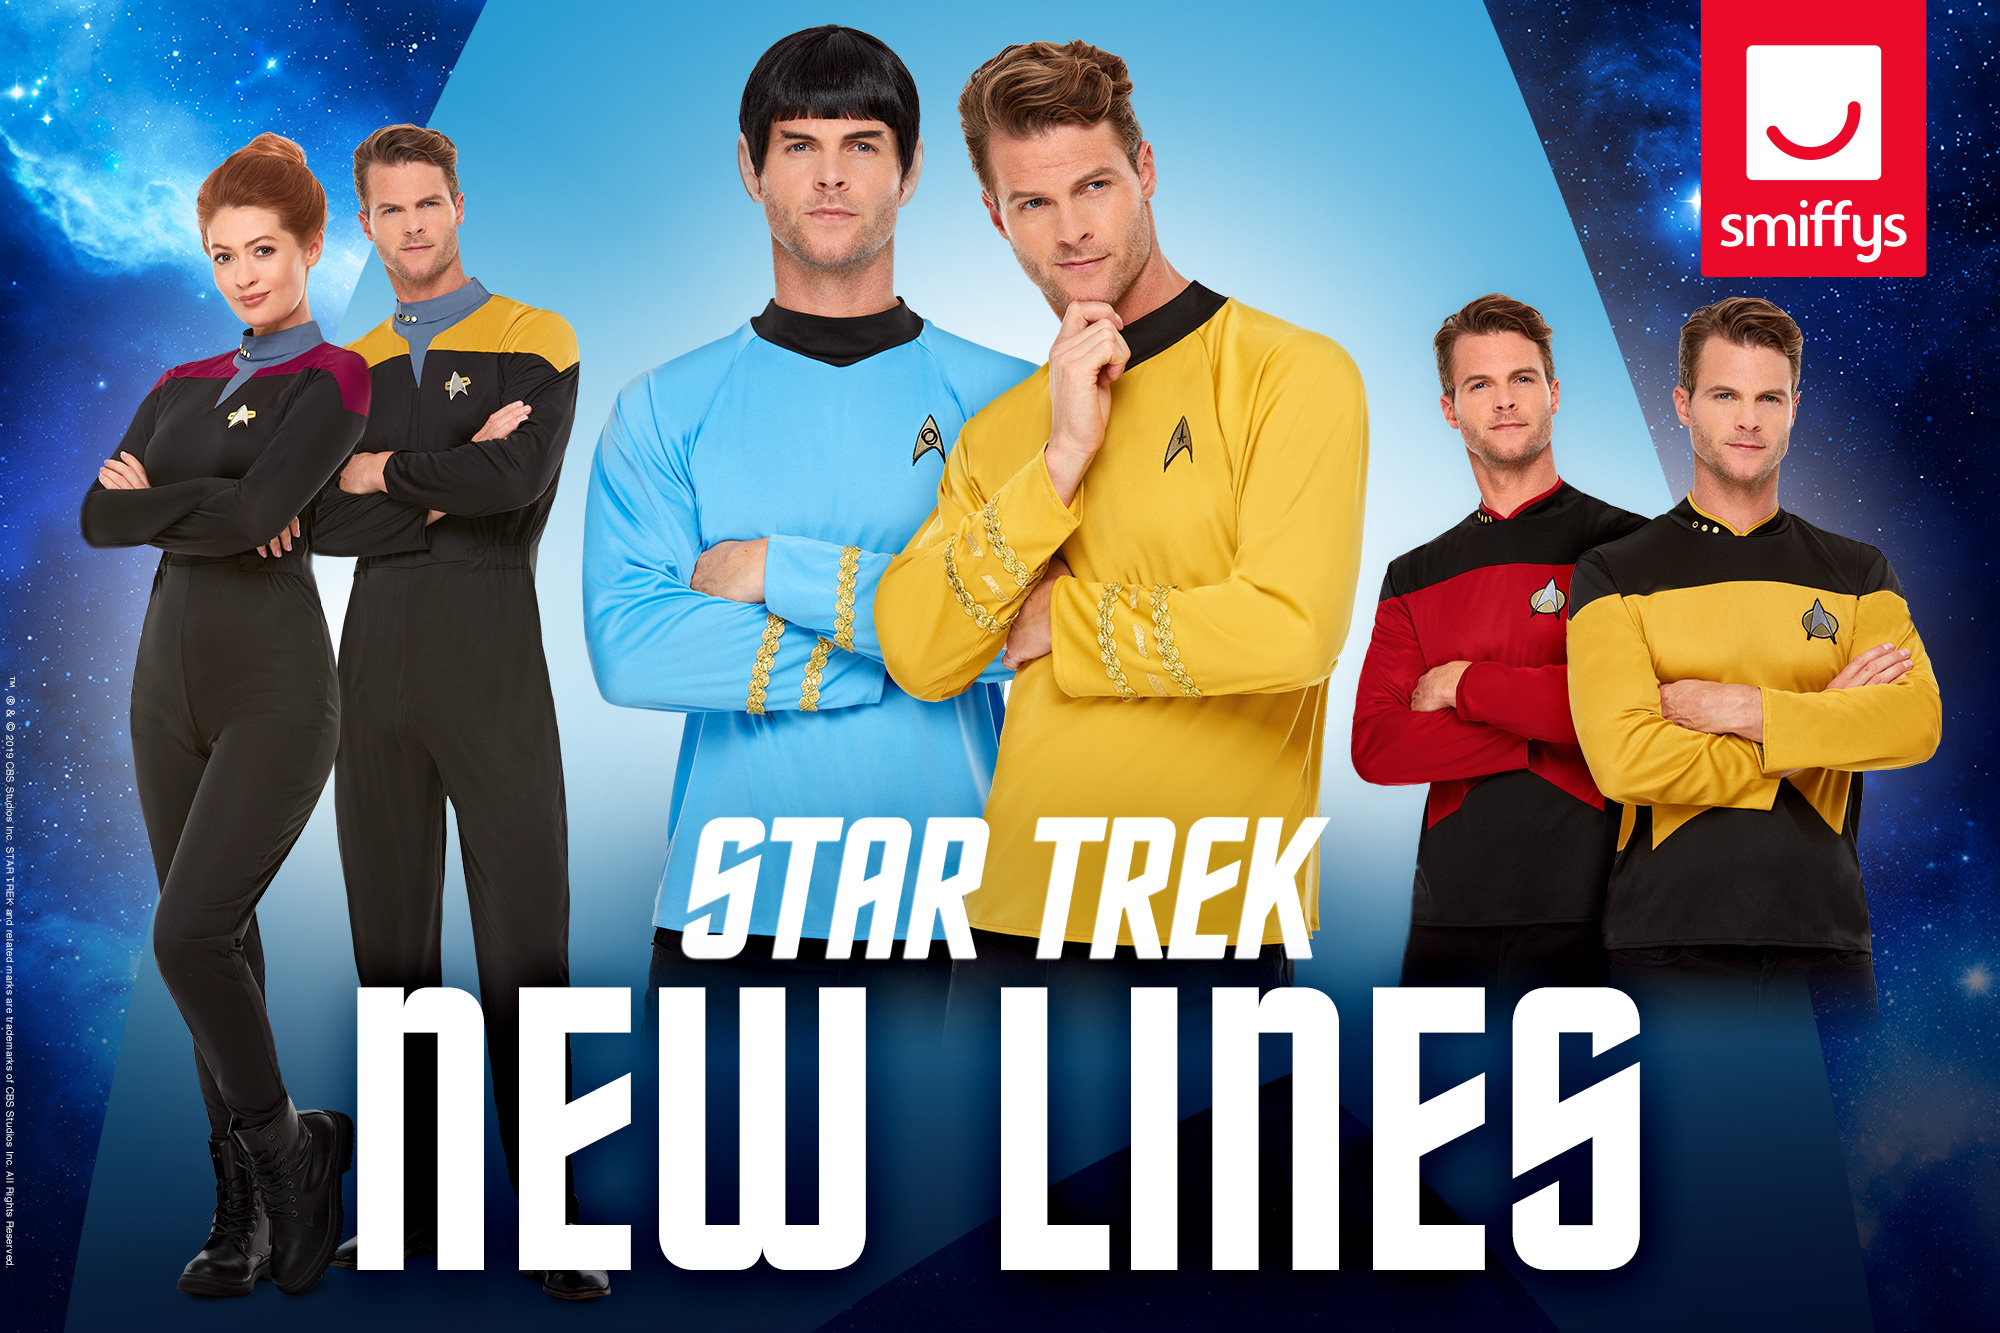 SMIFFYS IS PLEASED TO ANNOUNCE NEW OFFICIAL STAR TREK LINES